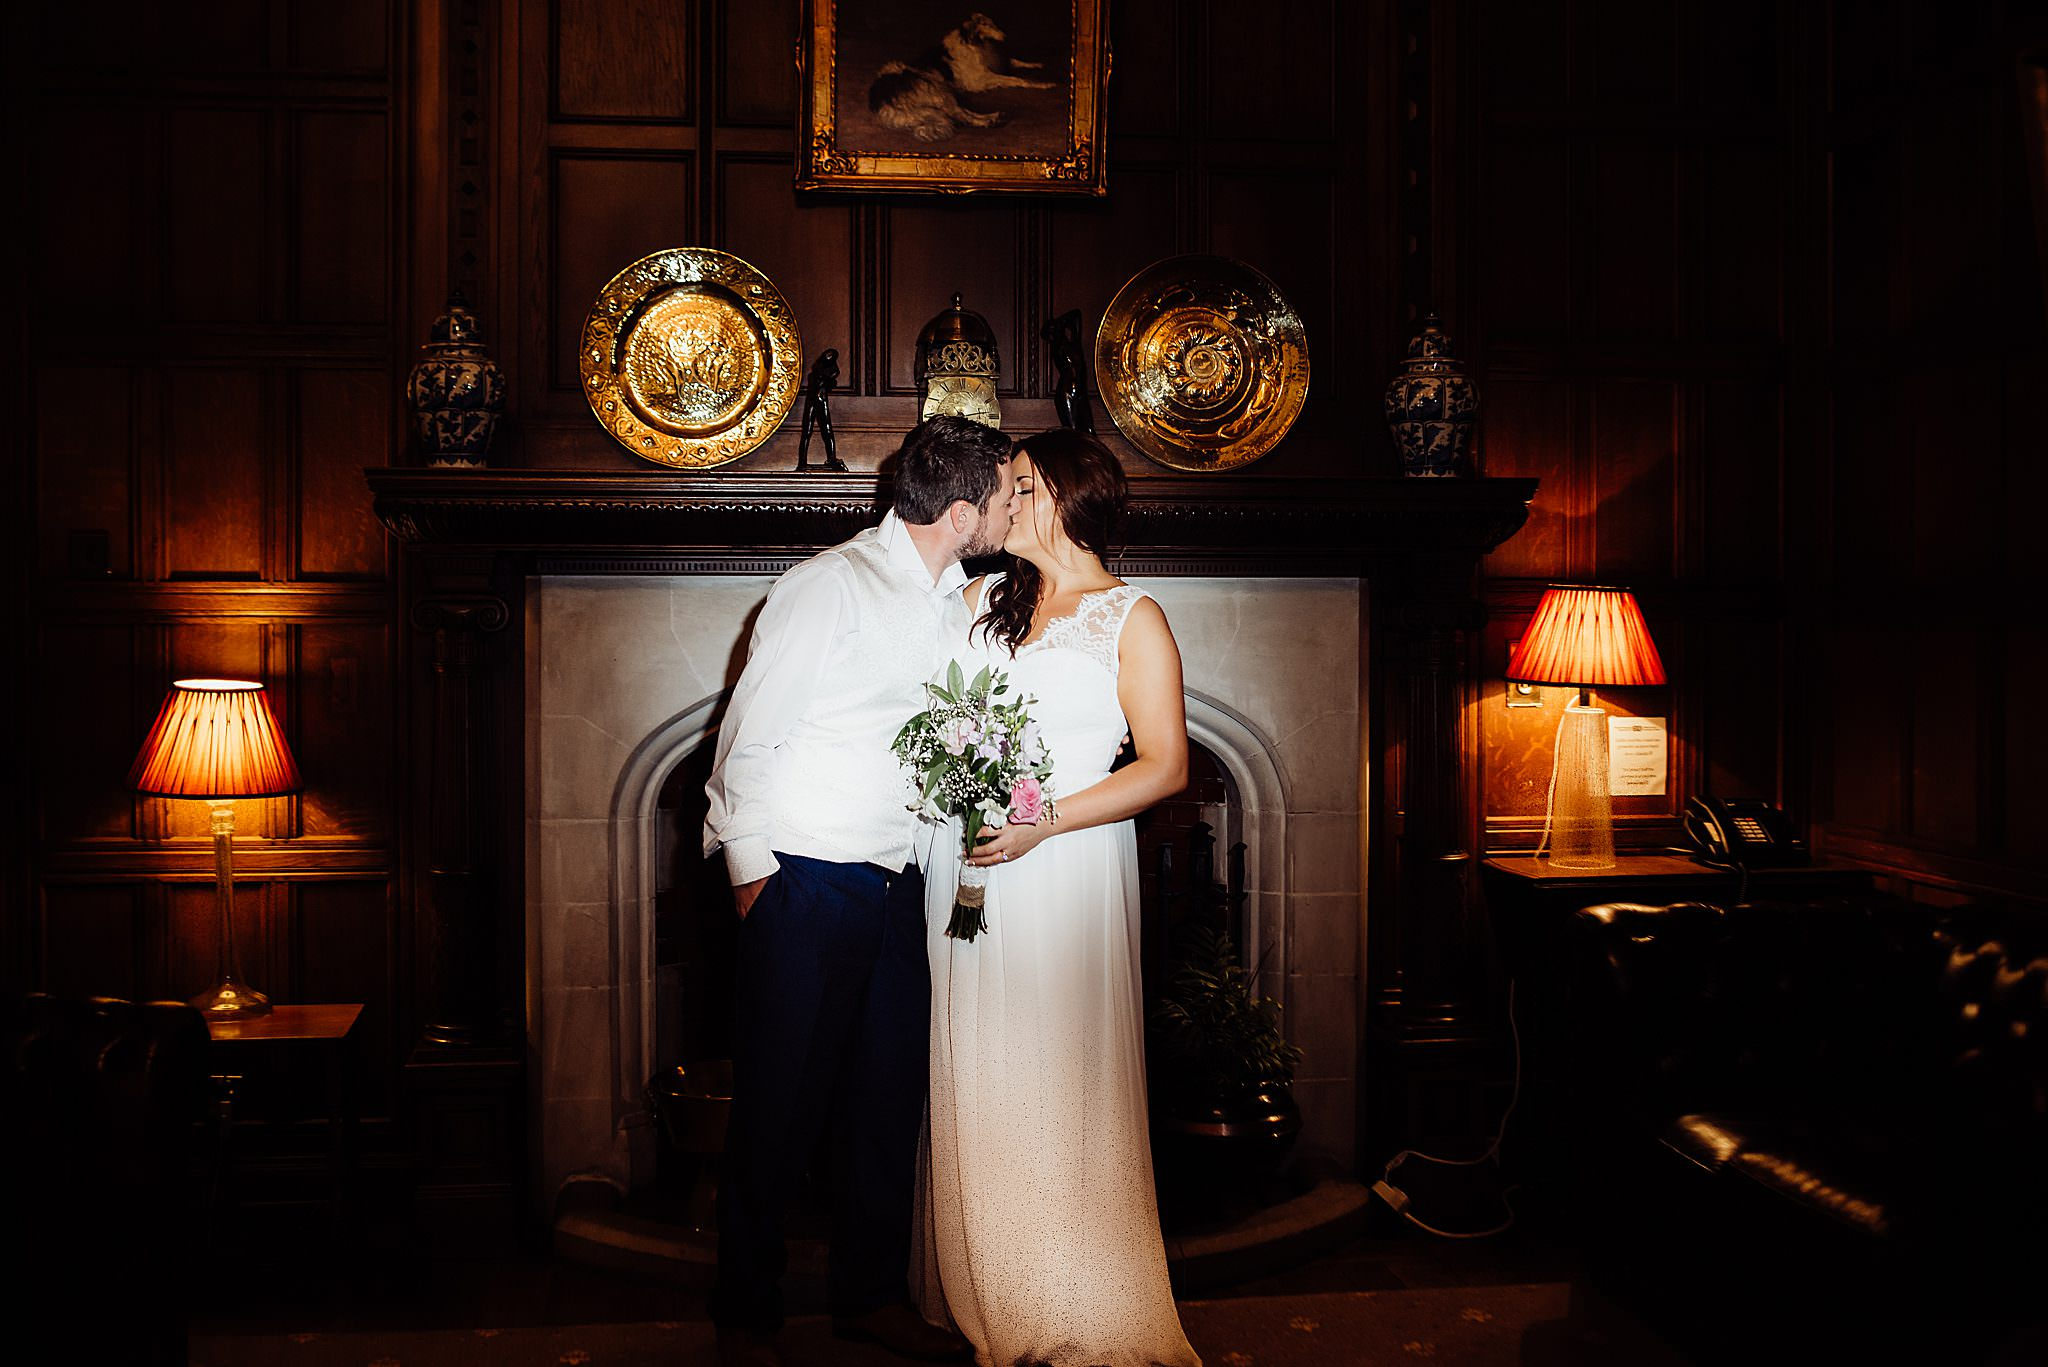 A night photo of bride and groom kissing inside Gregnog Hall infant of the fireplace with orange light eitherside